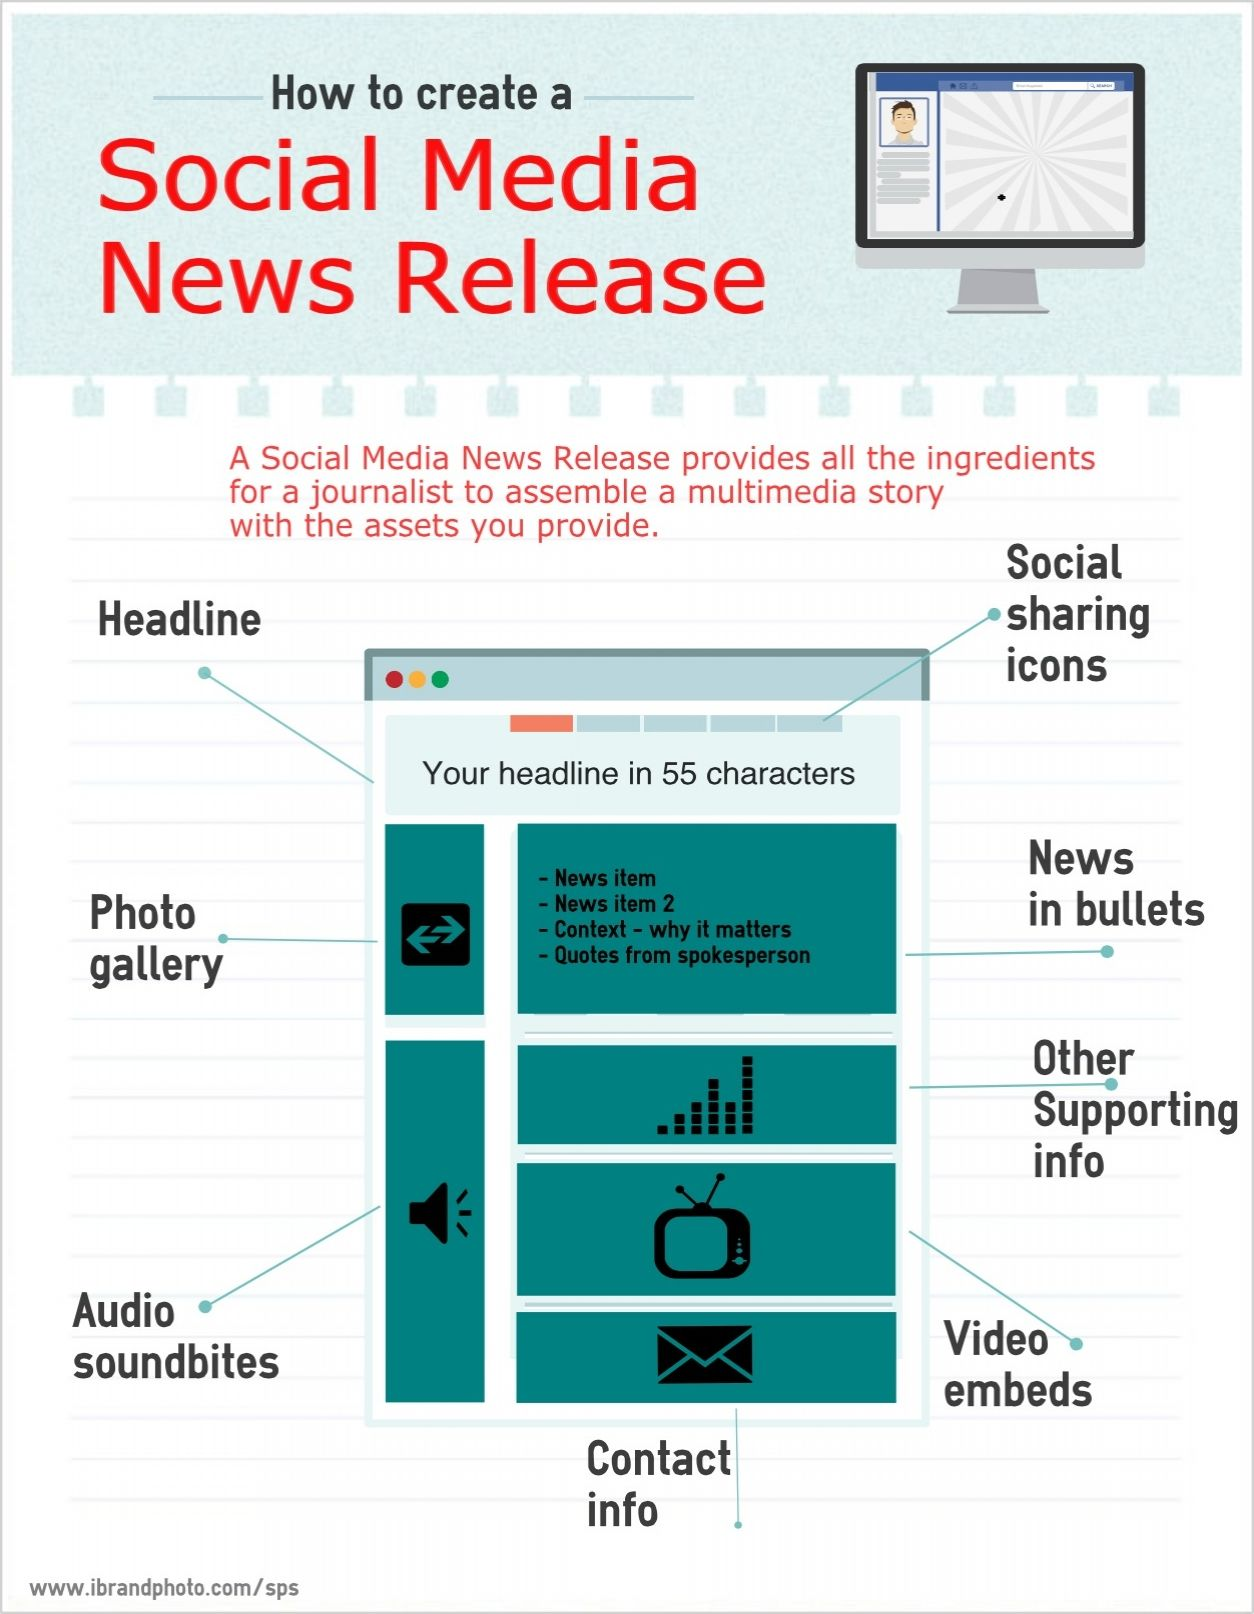 How to create a Social Media News Release | Smart Pictures Sell ...